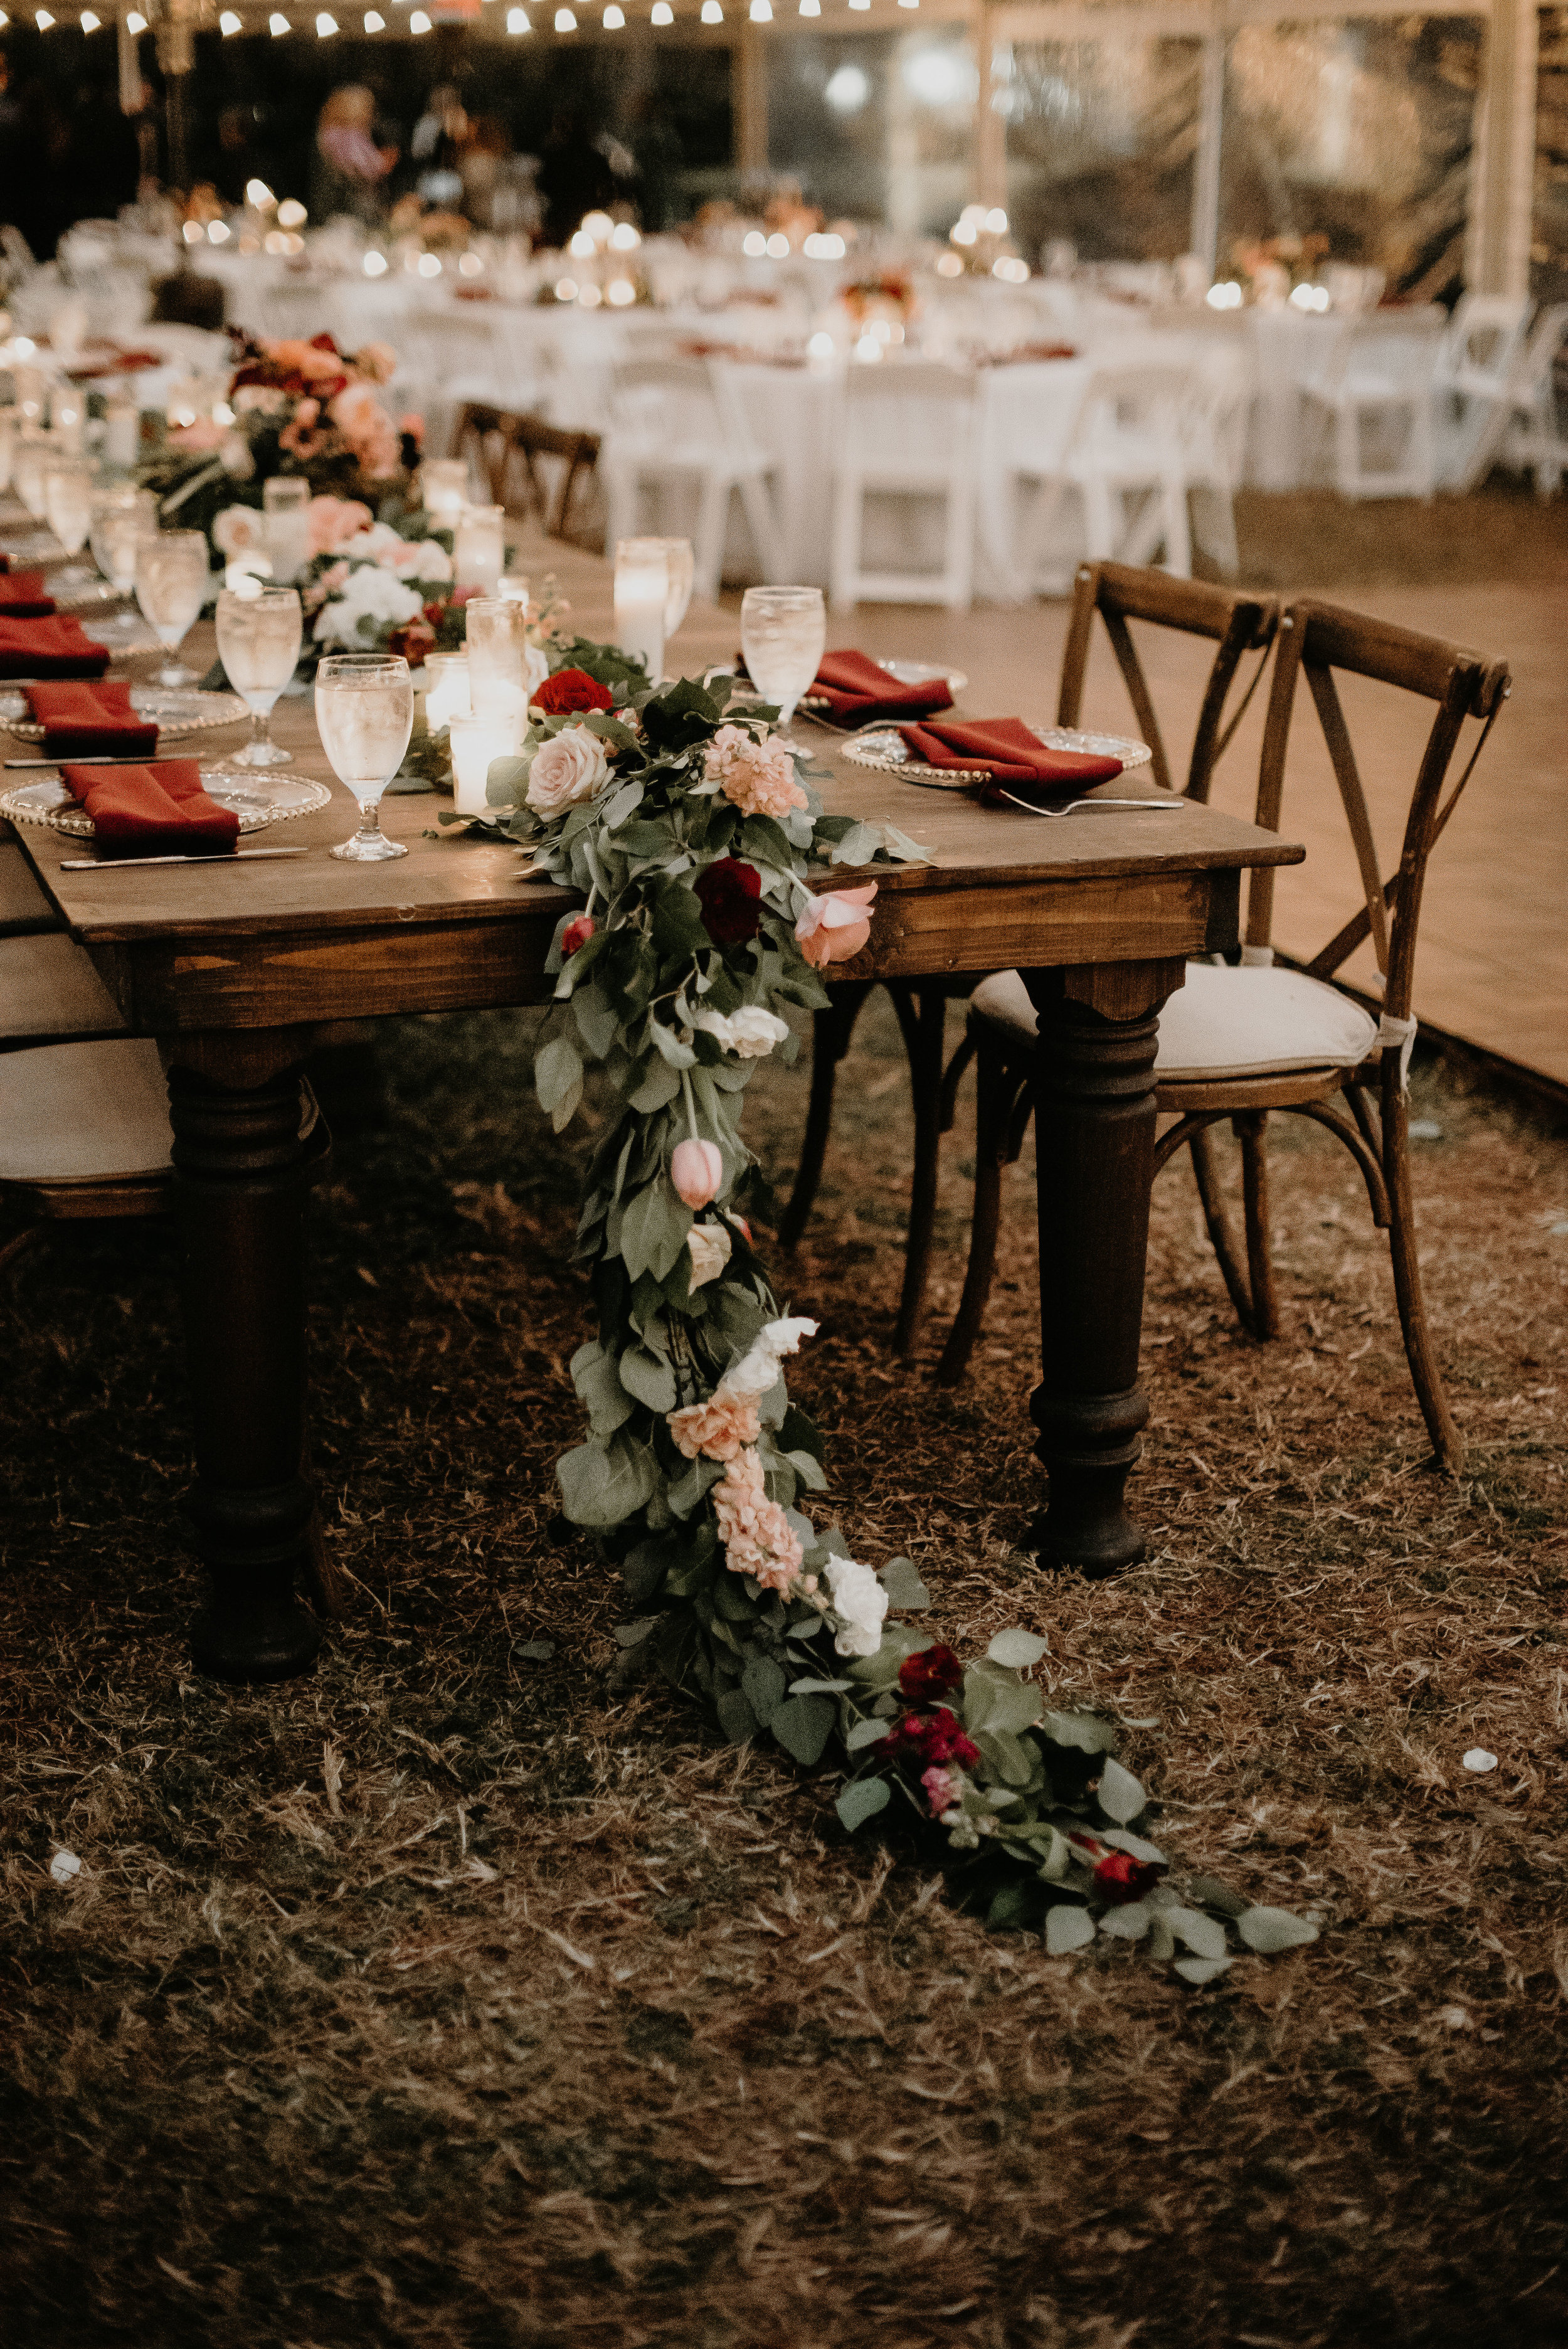 Floral table runner by Velvet and Twine at Cypress Grove Estate House tent reception